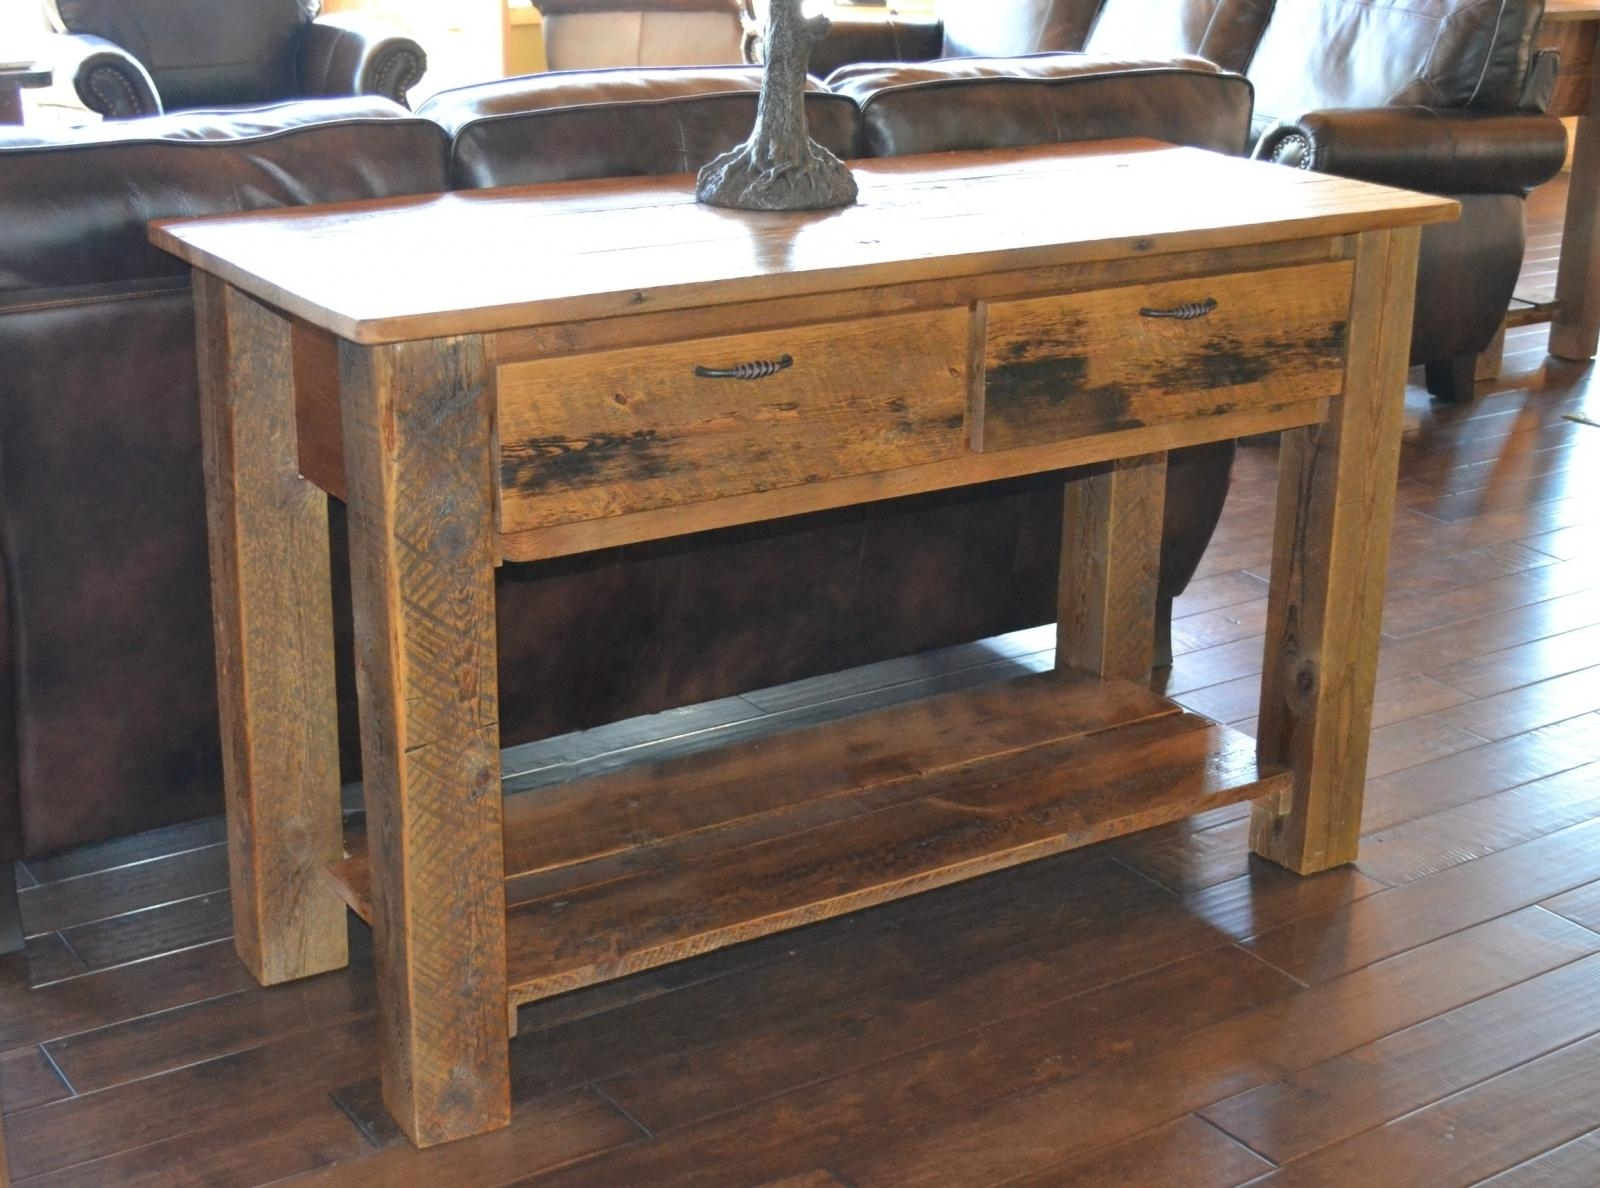 Barnwood Sofa Table | Sofa Gallery | Kengire With Barnwood Sofa Tables (Image 5 of 20)